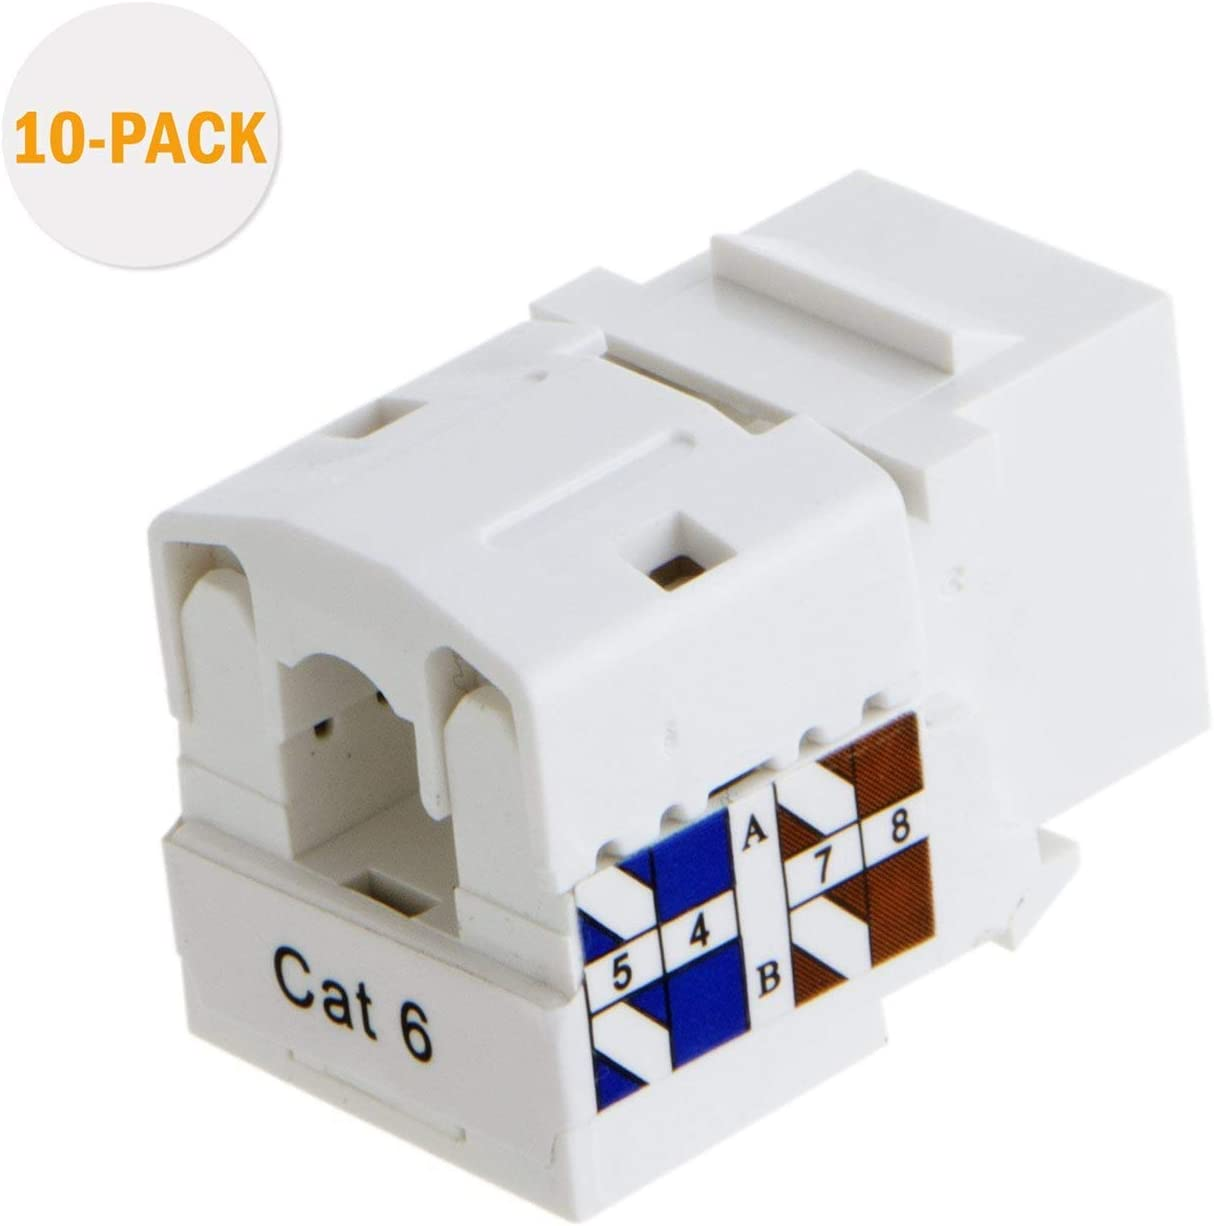 RJ45 Keystone Module Connector White Renewed CableCreation 20-Pack Cat6